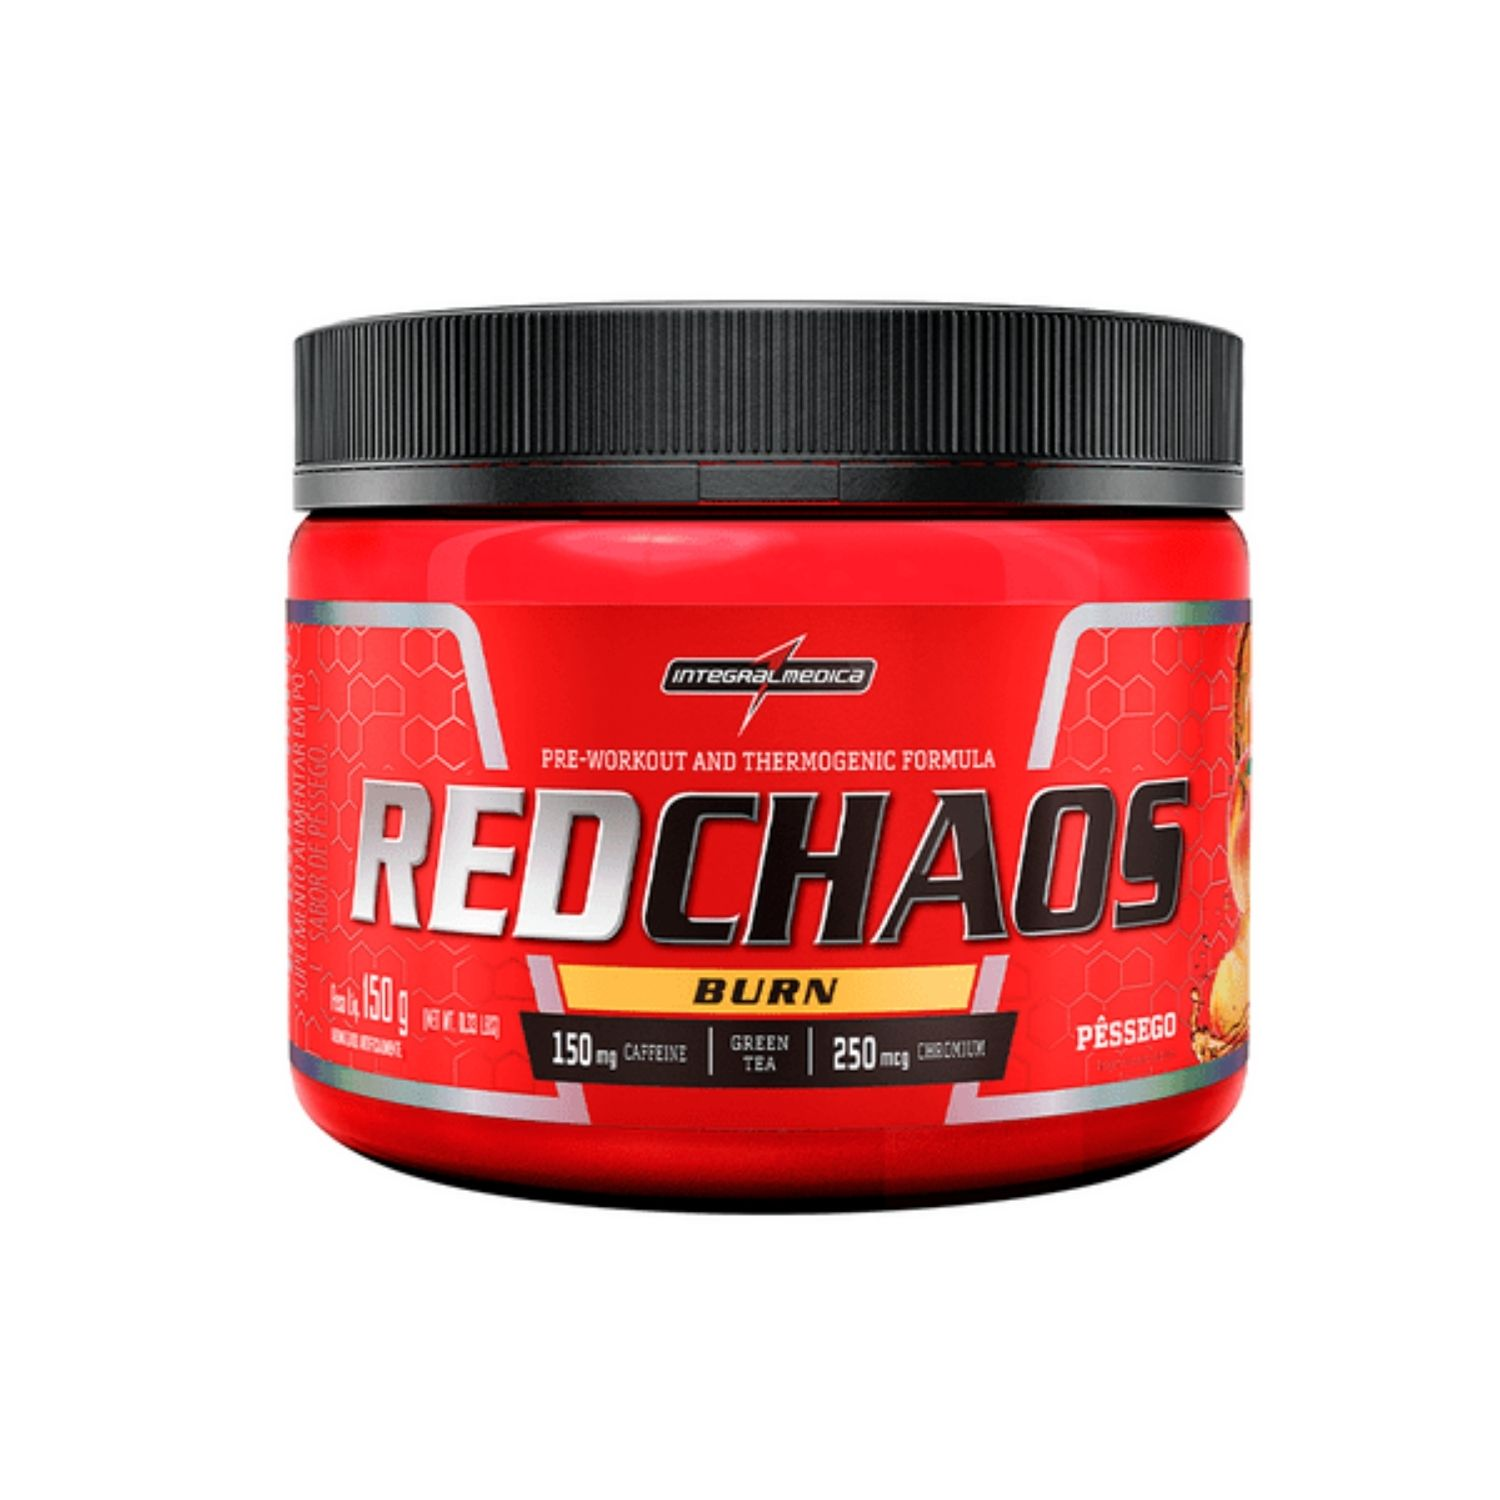 Red Chaos Burn 150g Integralmedica